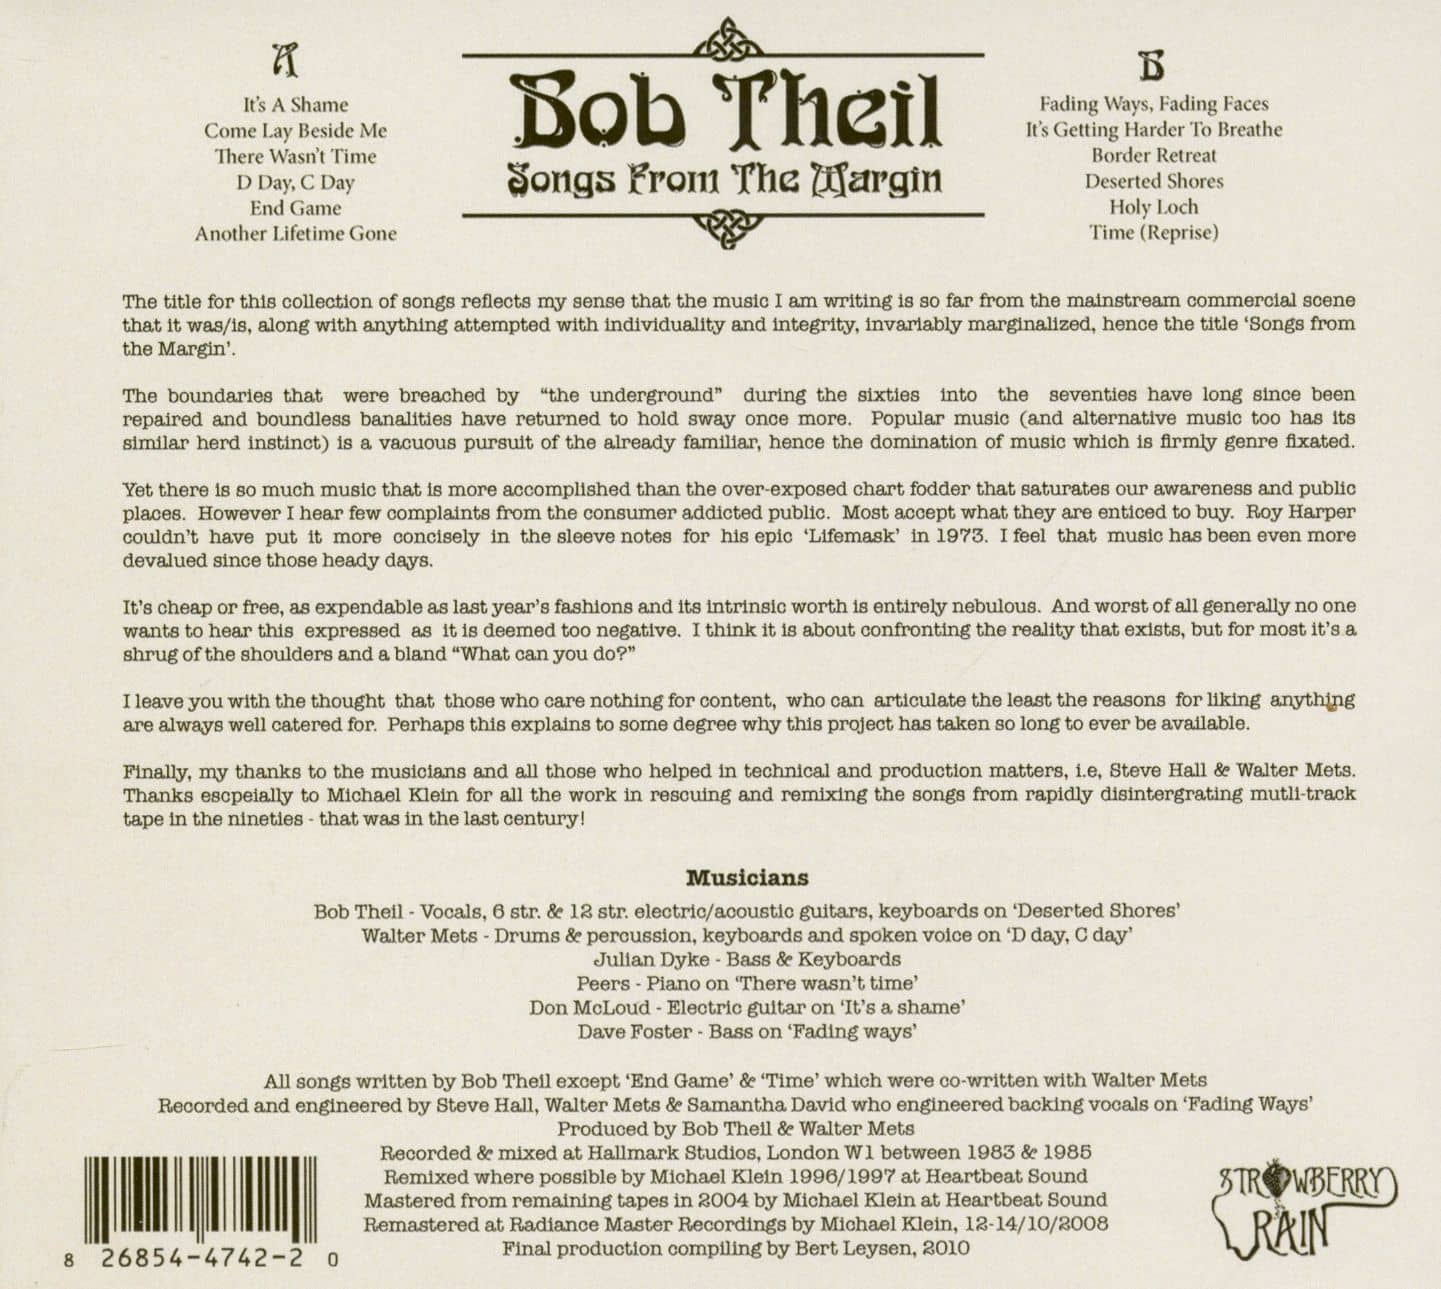 Bob Theil Songs From The Margin (CD)